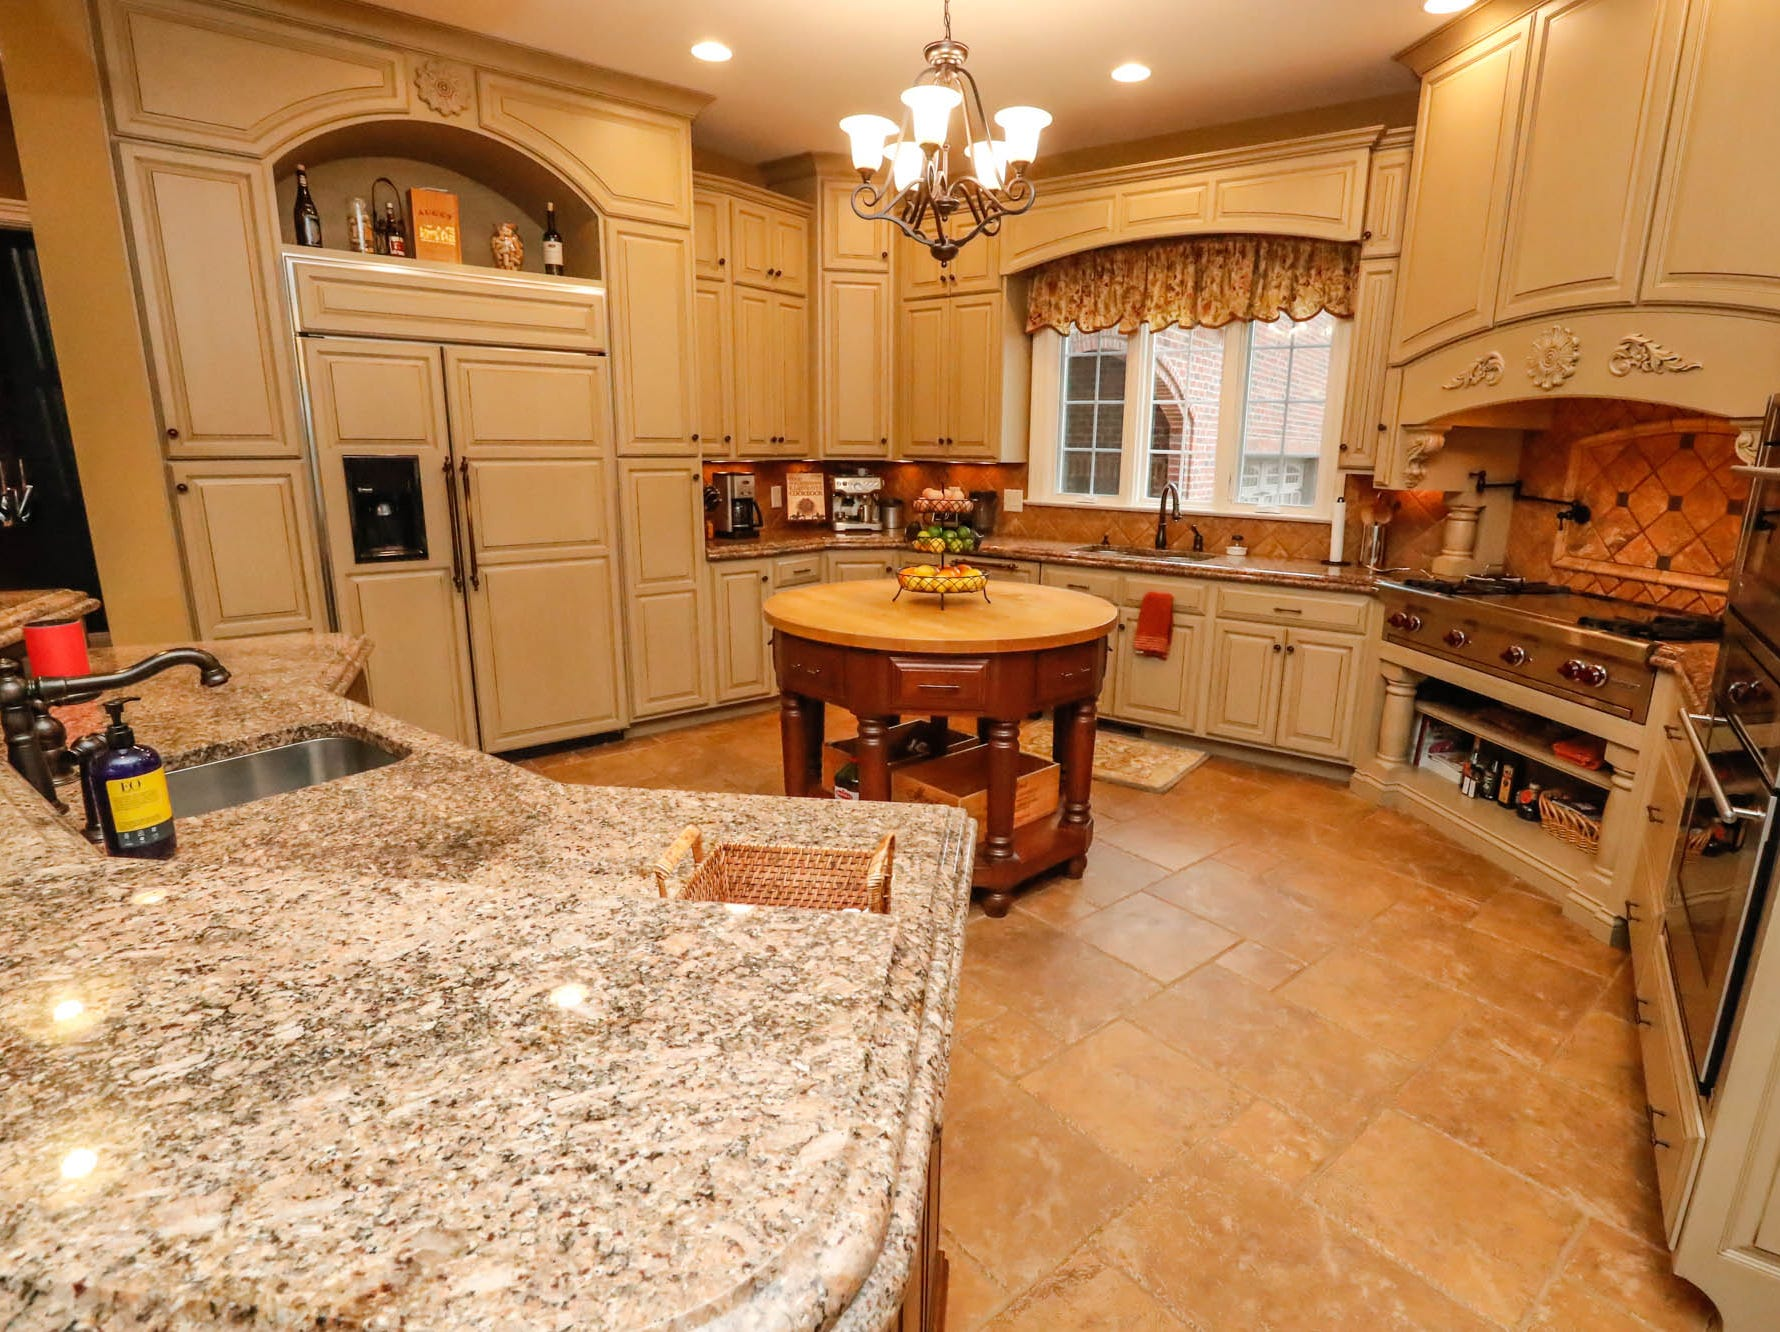 The open plan kitchen features granite counter tops and rustic Tuscan tile in a traditional $2m home up for sale in Bargersville Ind. on Wednesday, Jan. 9, 2019. The house sits on 8.1 acres.